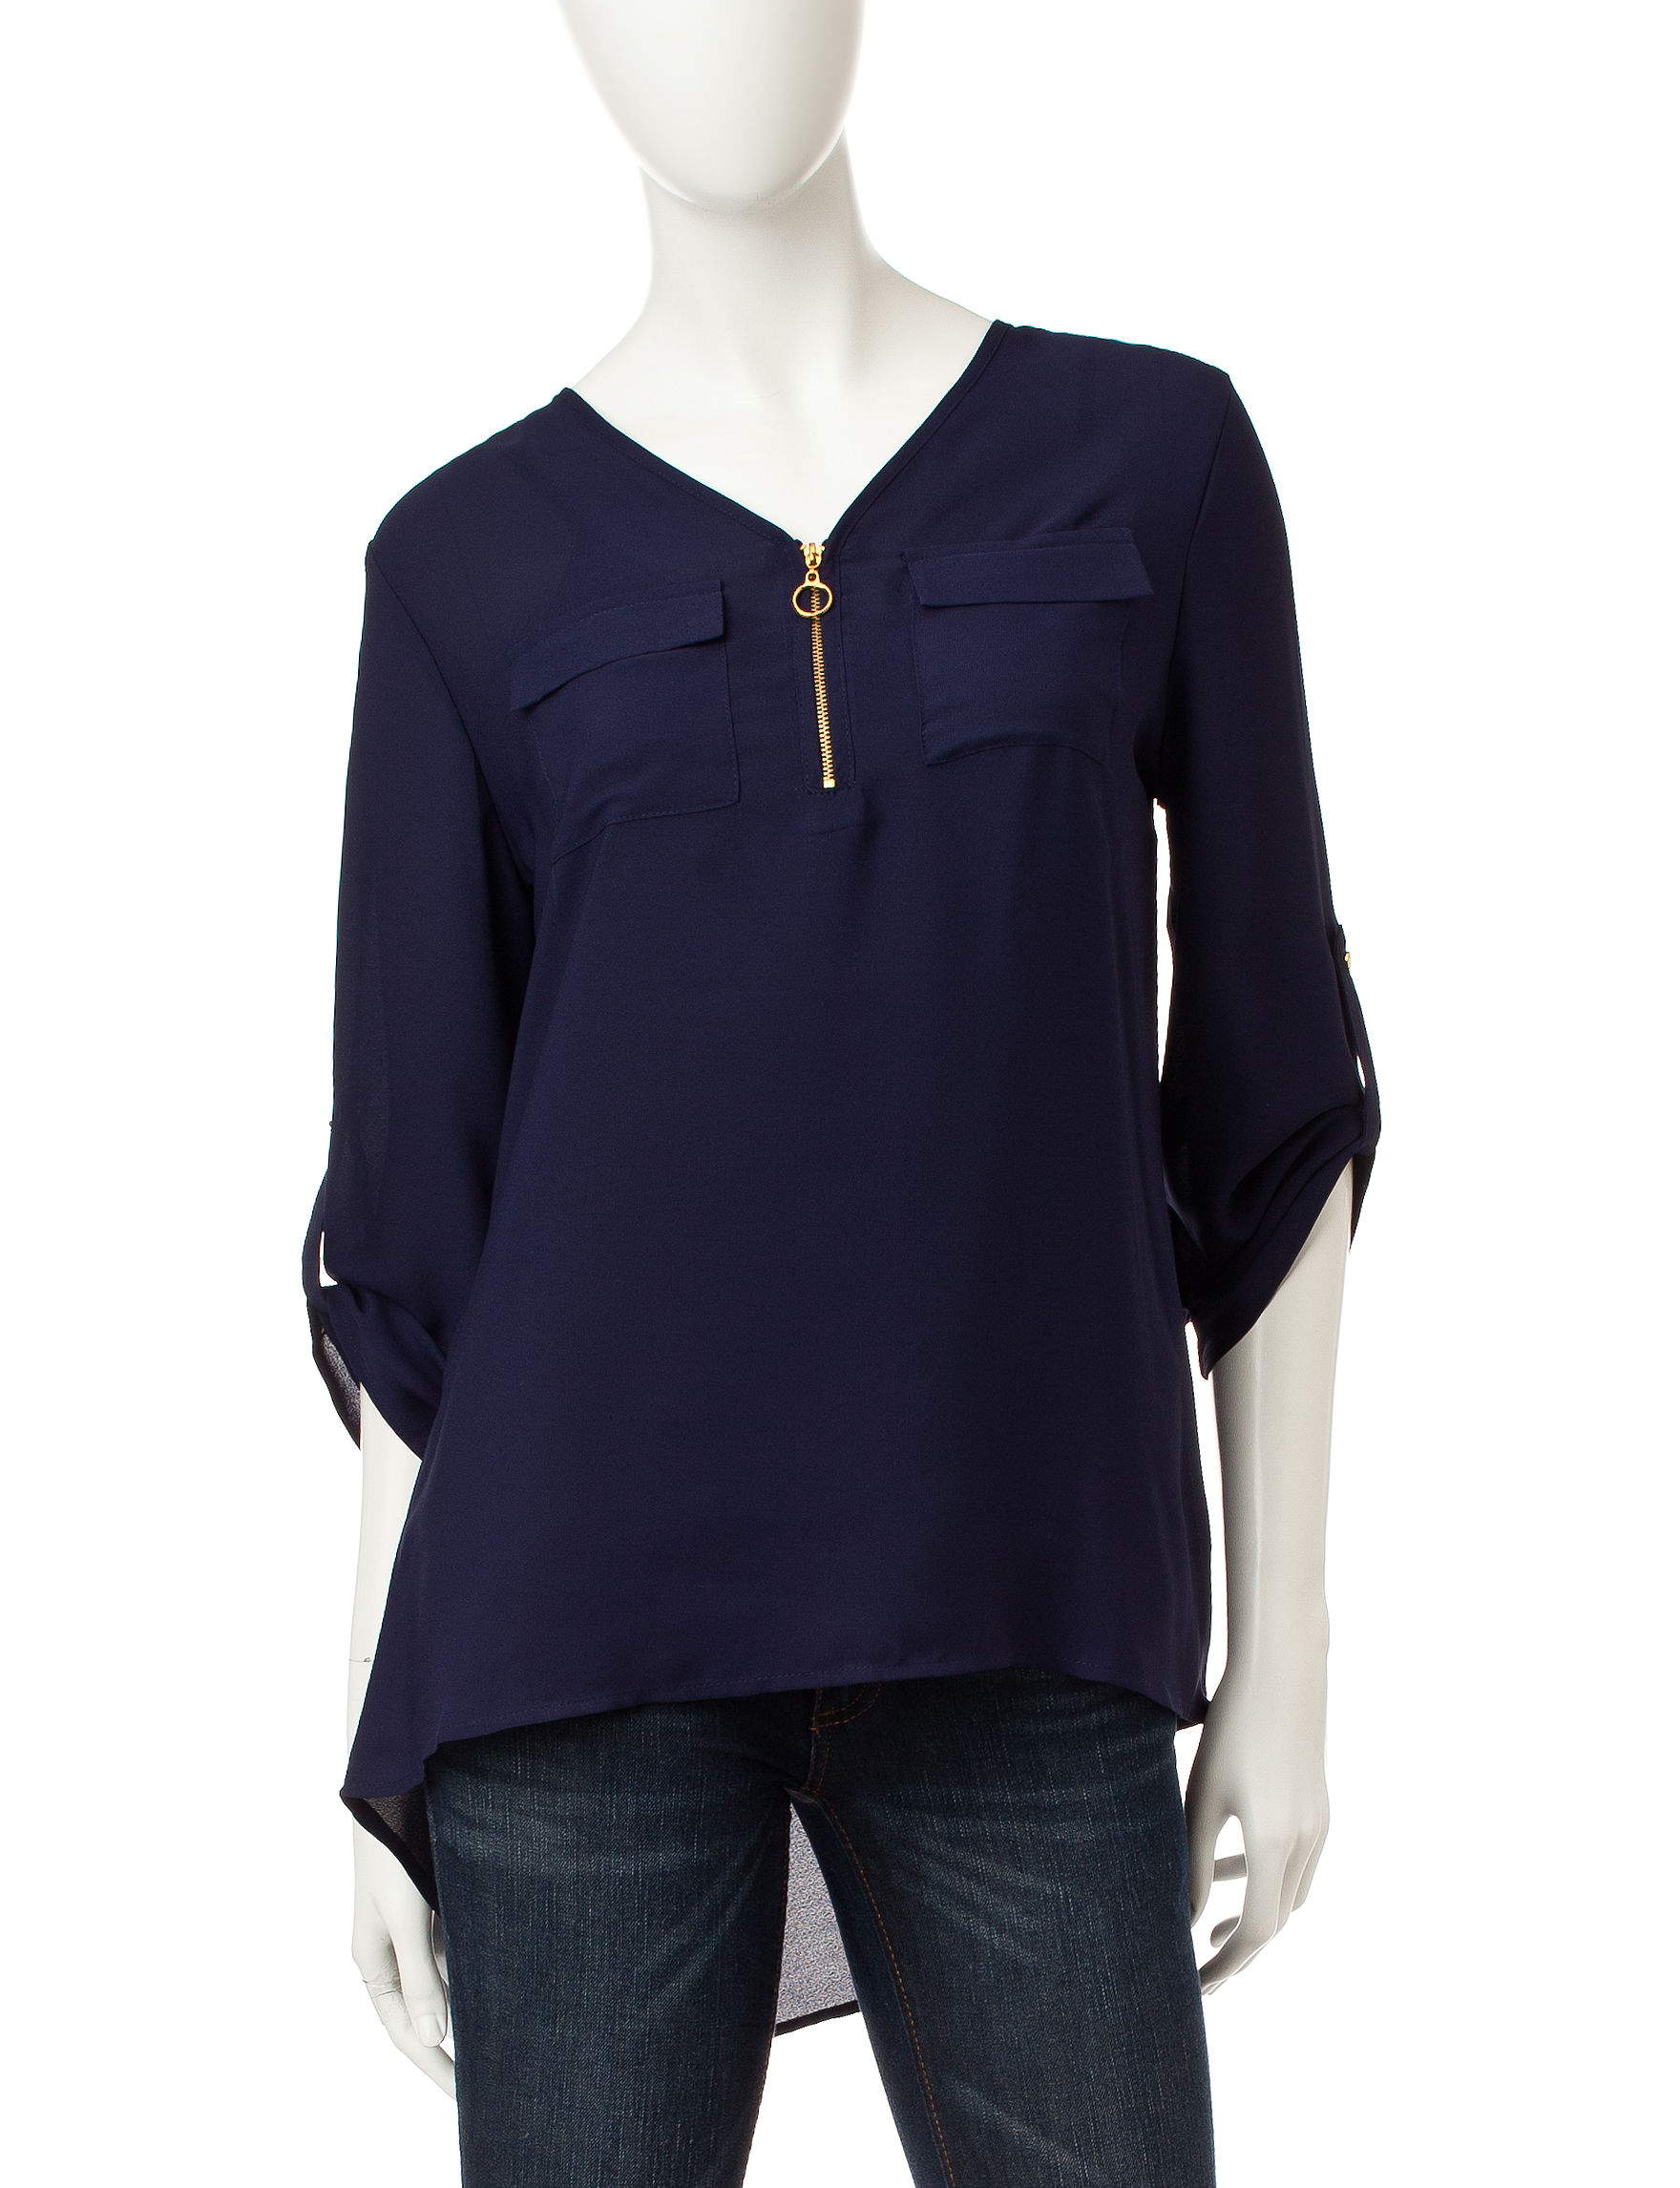 Wishful Park Dark Blue Pull-overs Shirts & Blouses